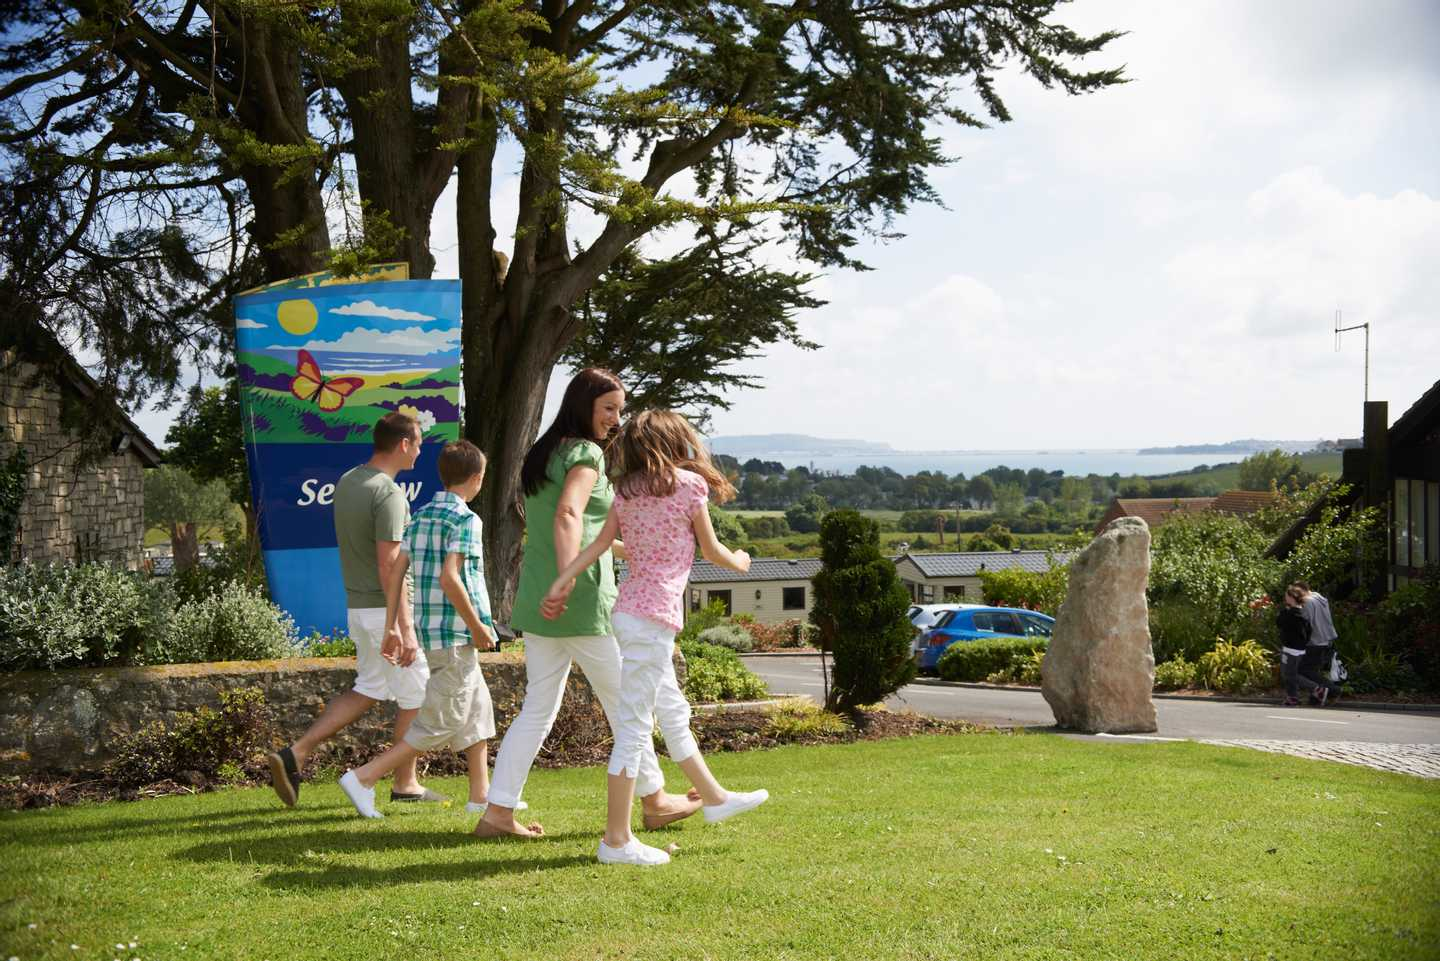 Guests walking through the entrance to Seaview Holiday Park